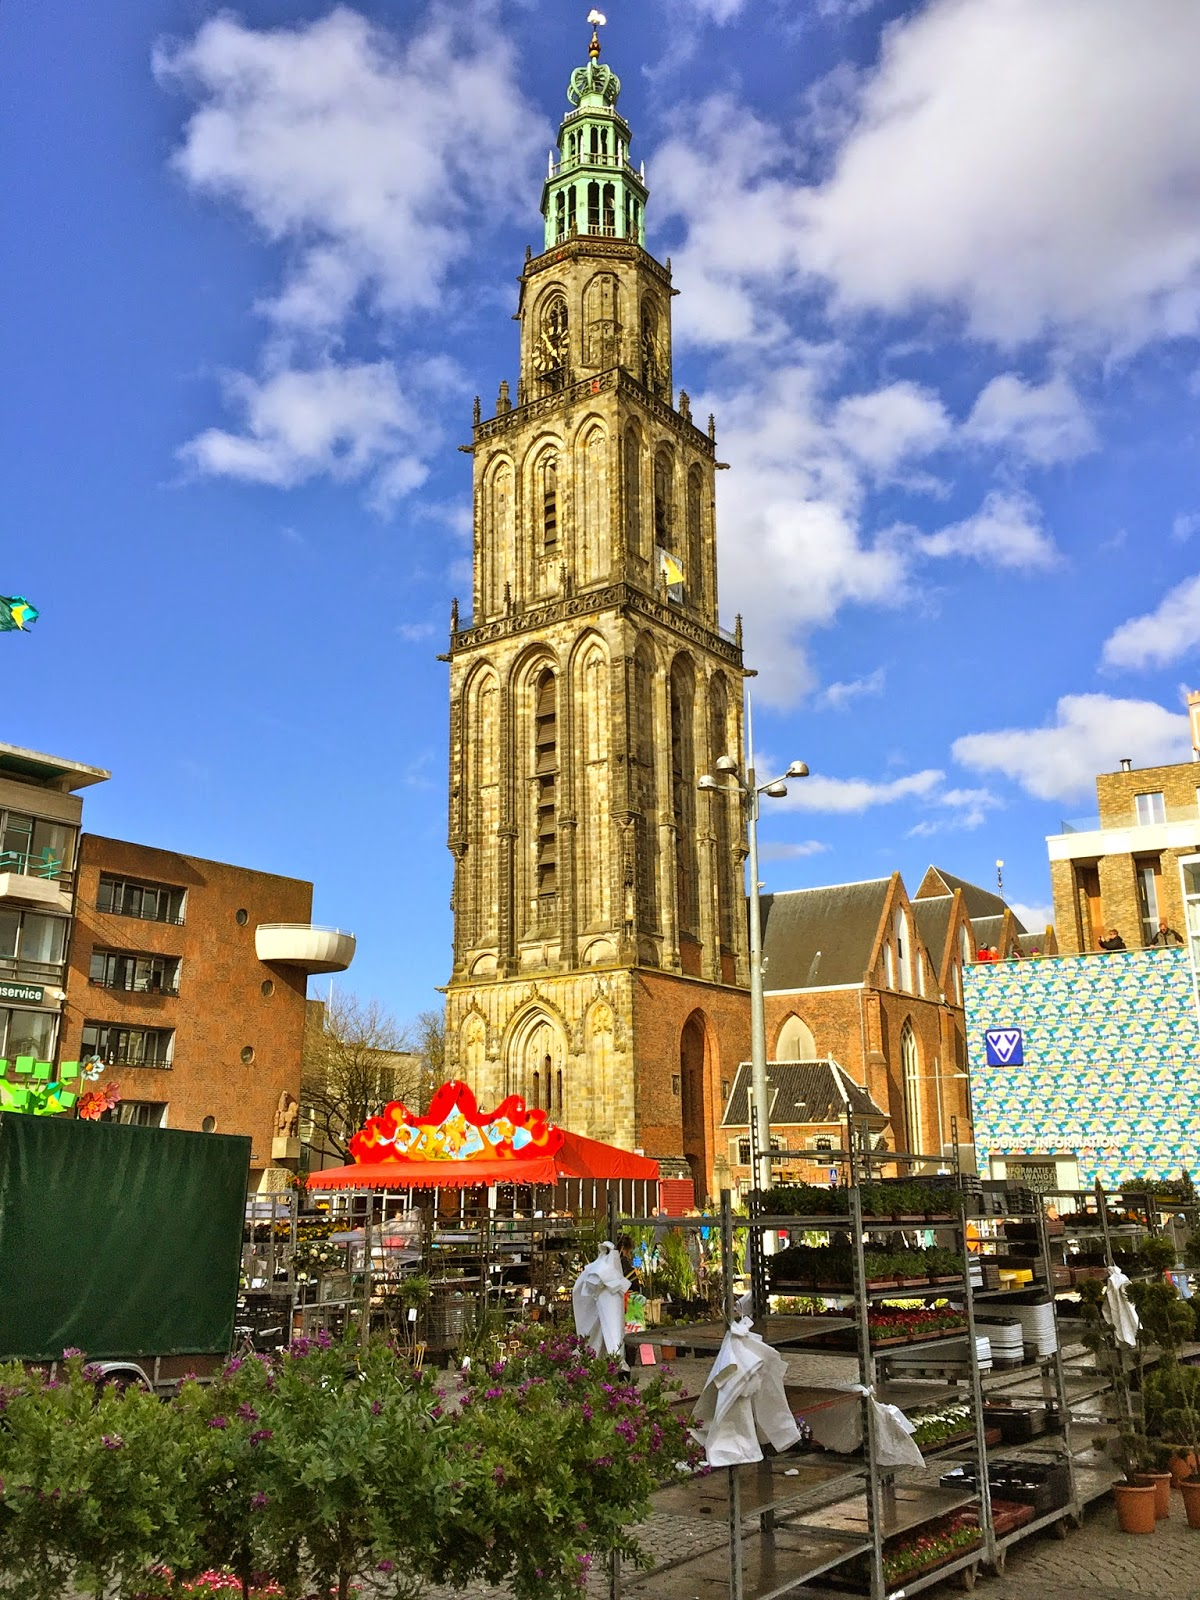 Picture of the Martini Tower and the flower market in Groningen.